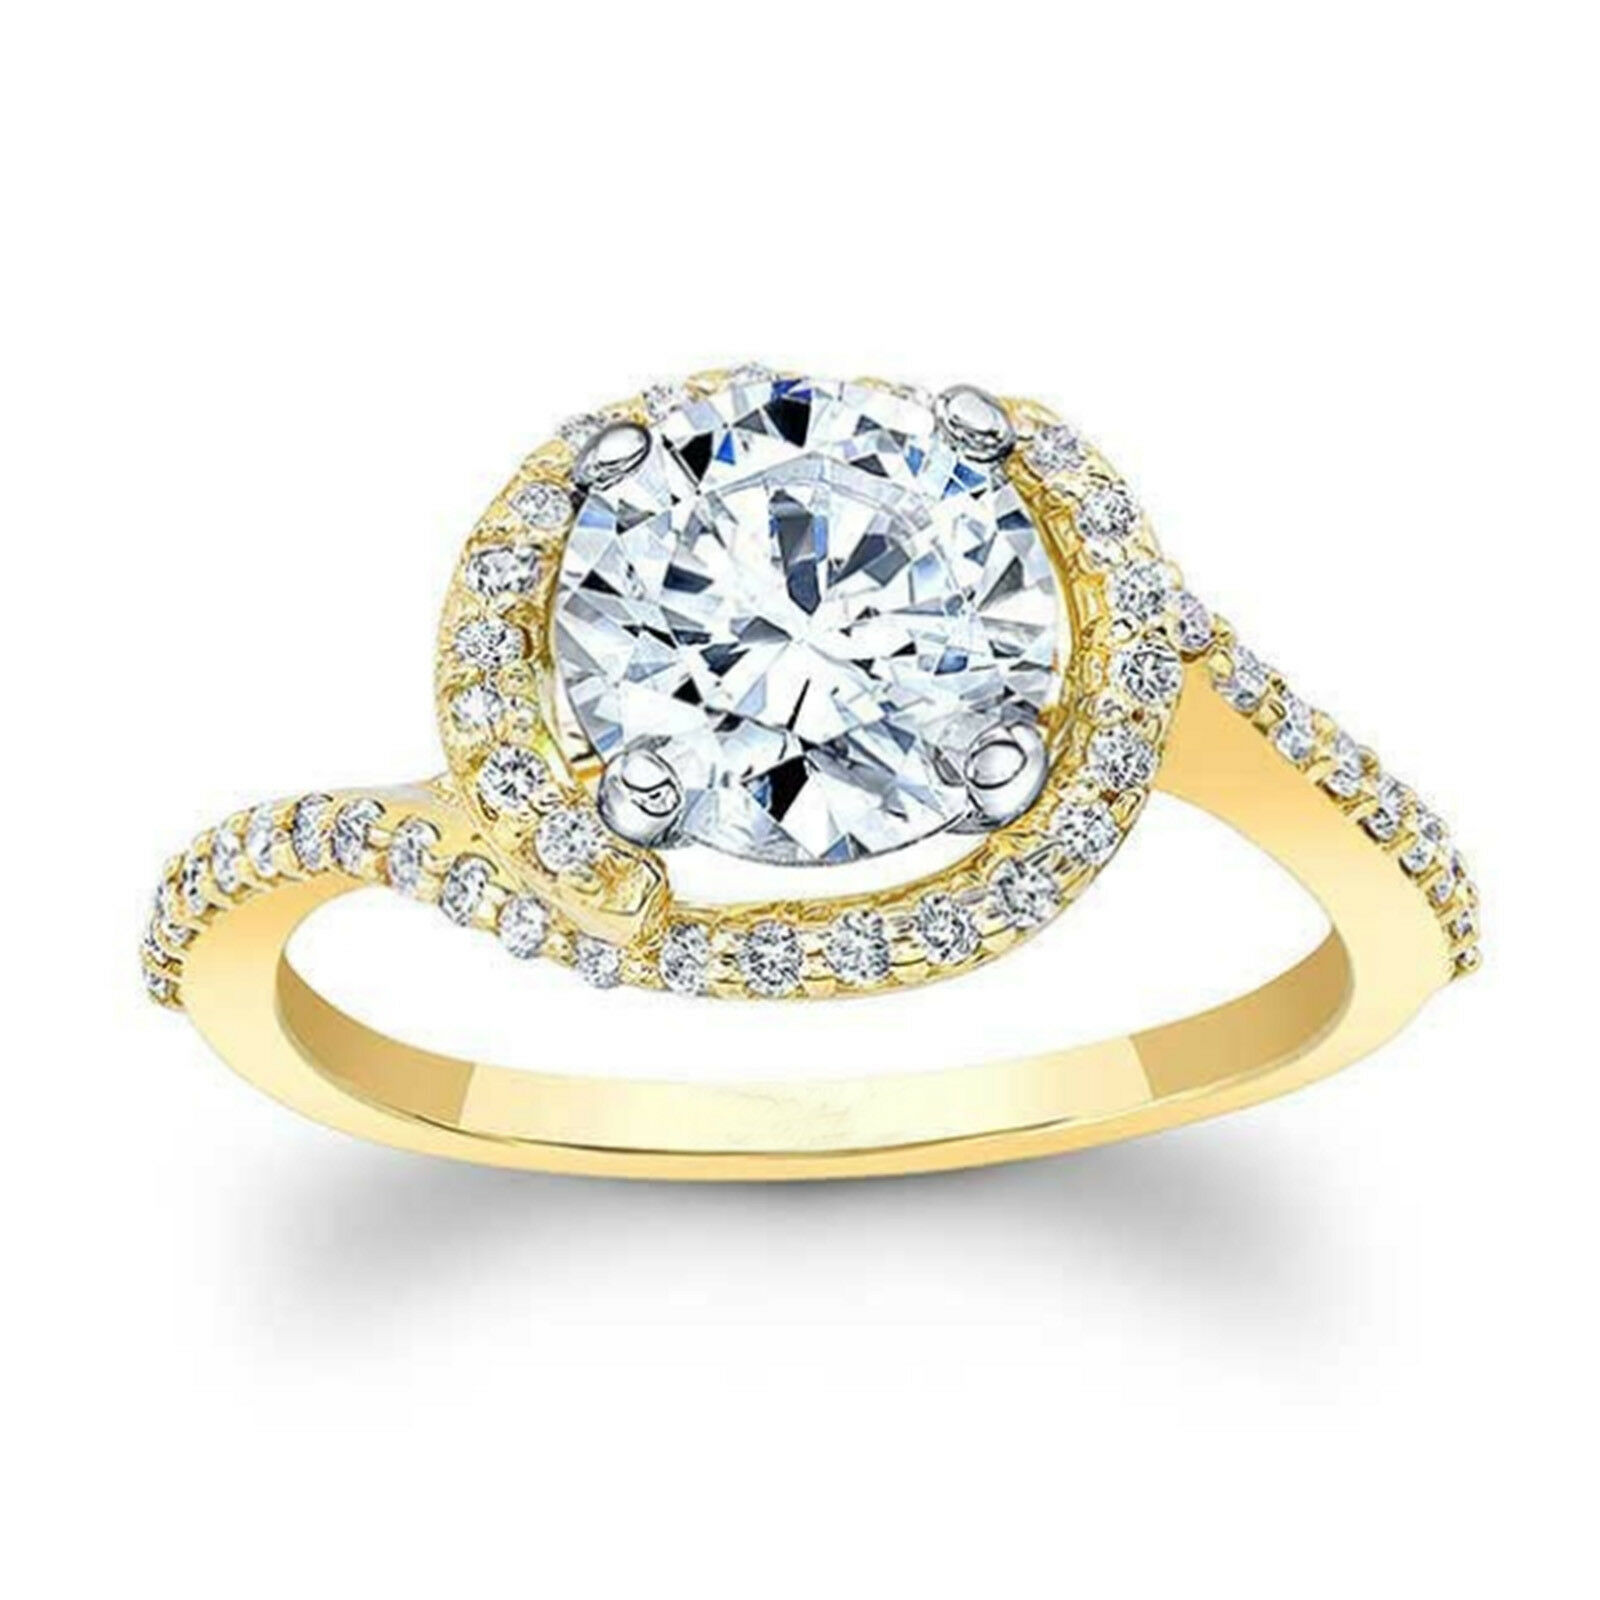 1.28 Ct Moissanite Wedding Hallmarked 14k Yellow gold Solitaire Engagement Ring